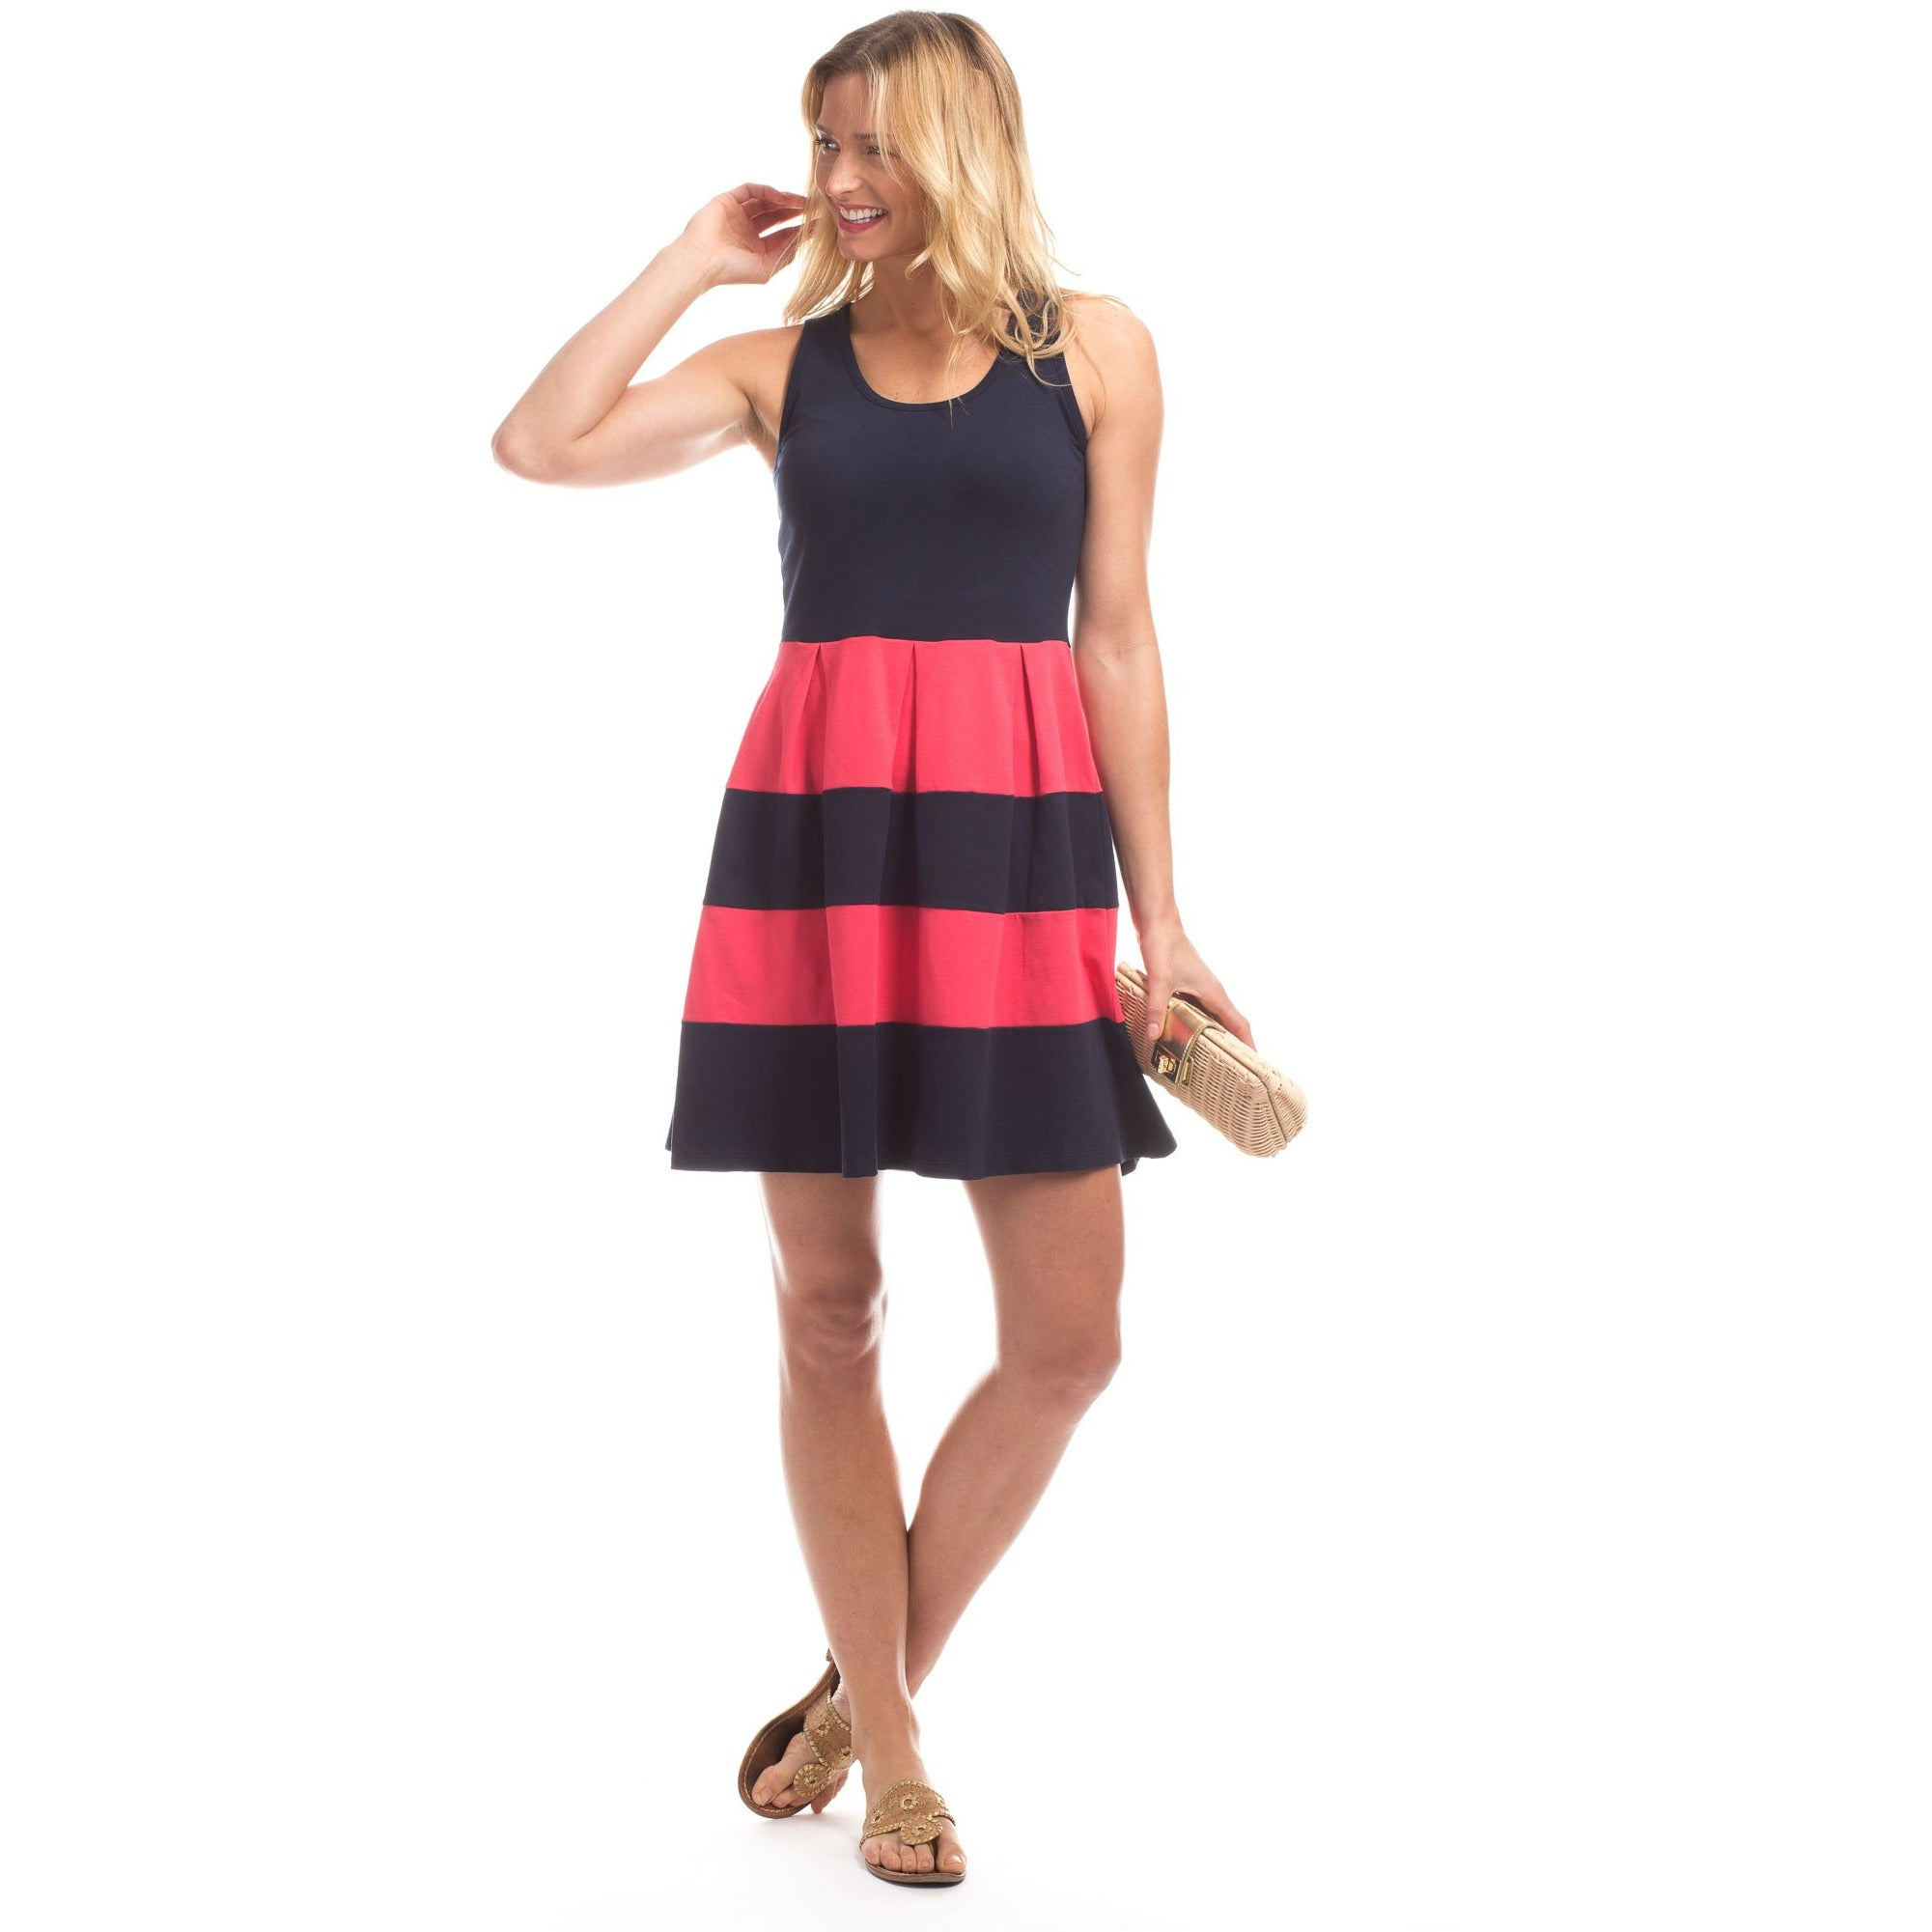 Duffield Lane Ludington Striped Dress Berry/Navy